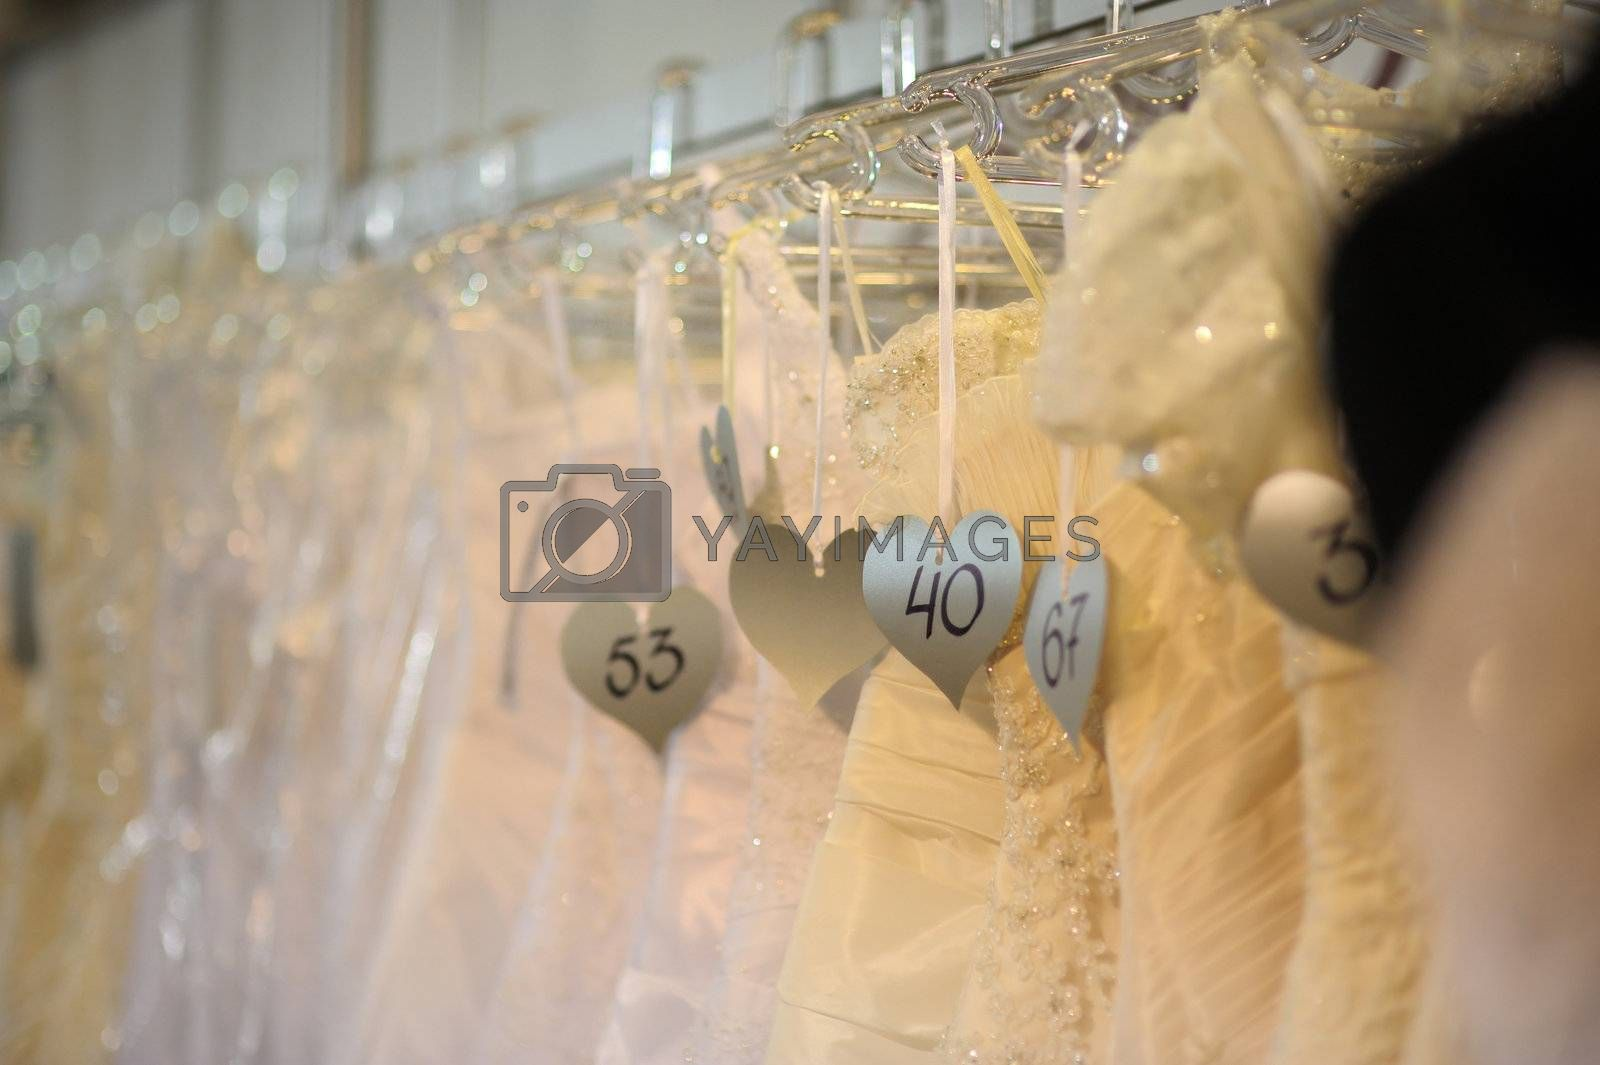 Wedding dresses with numbering labels